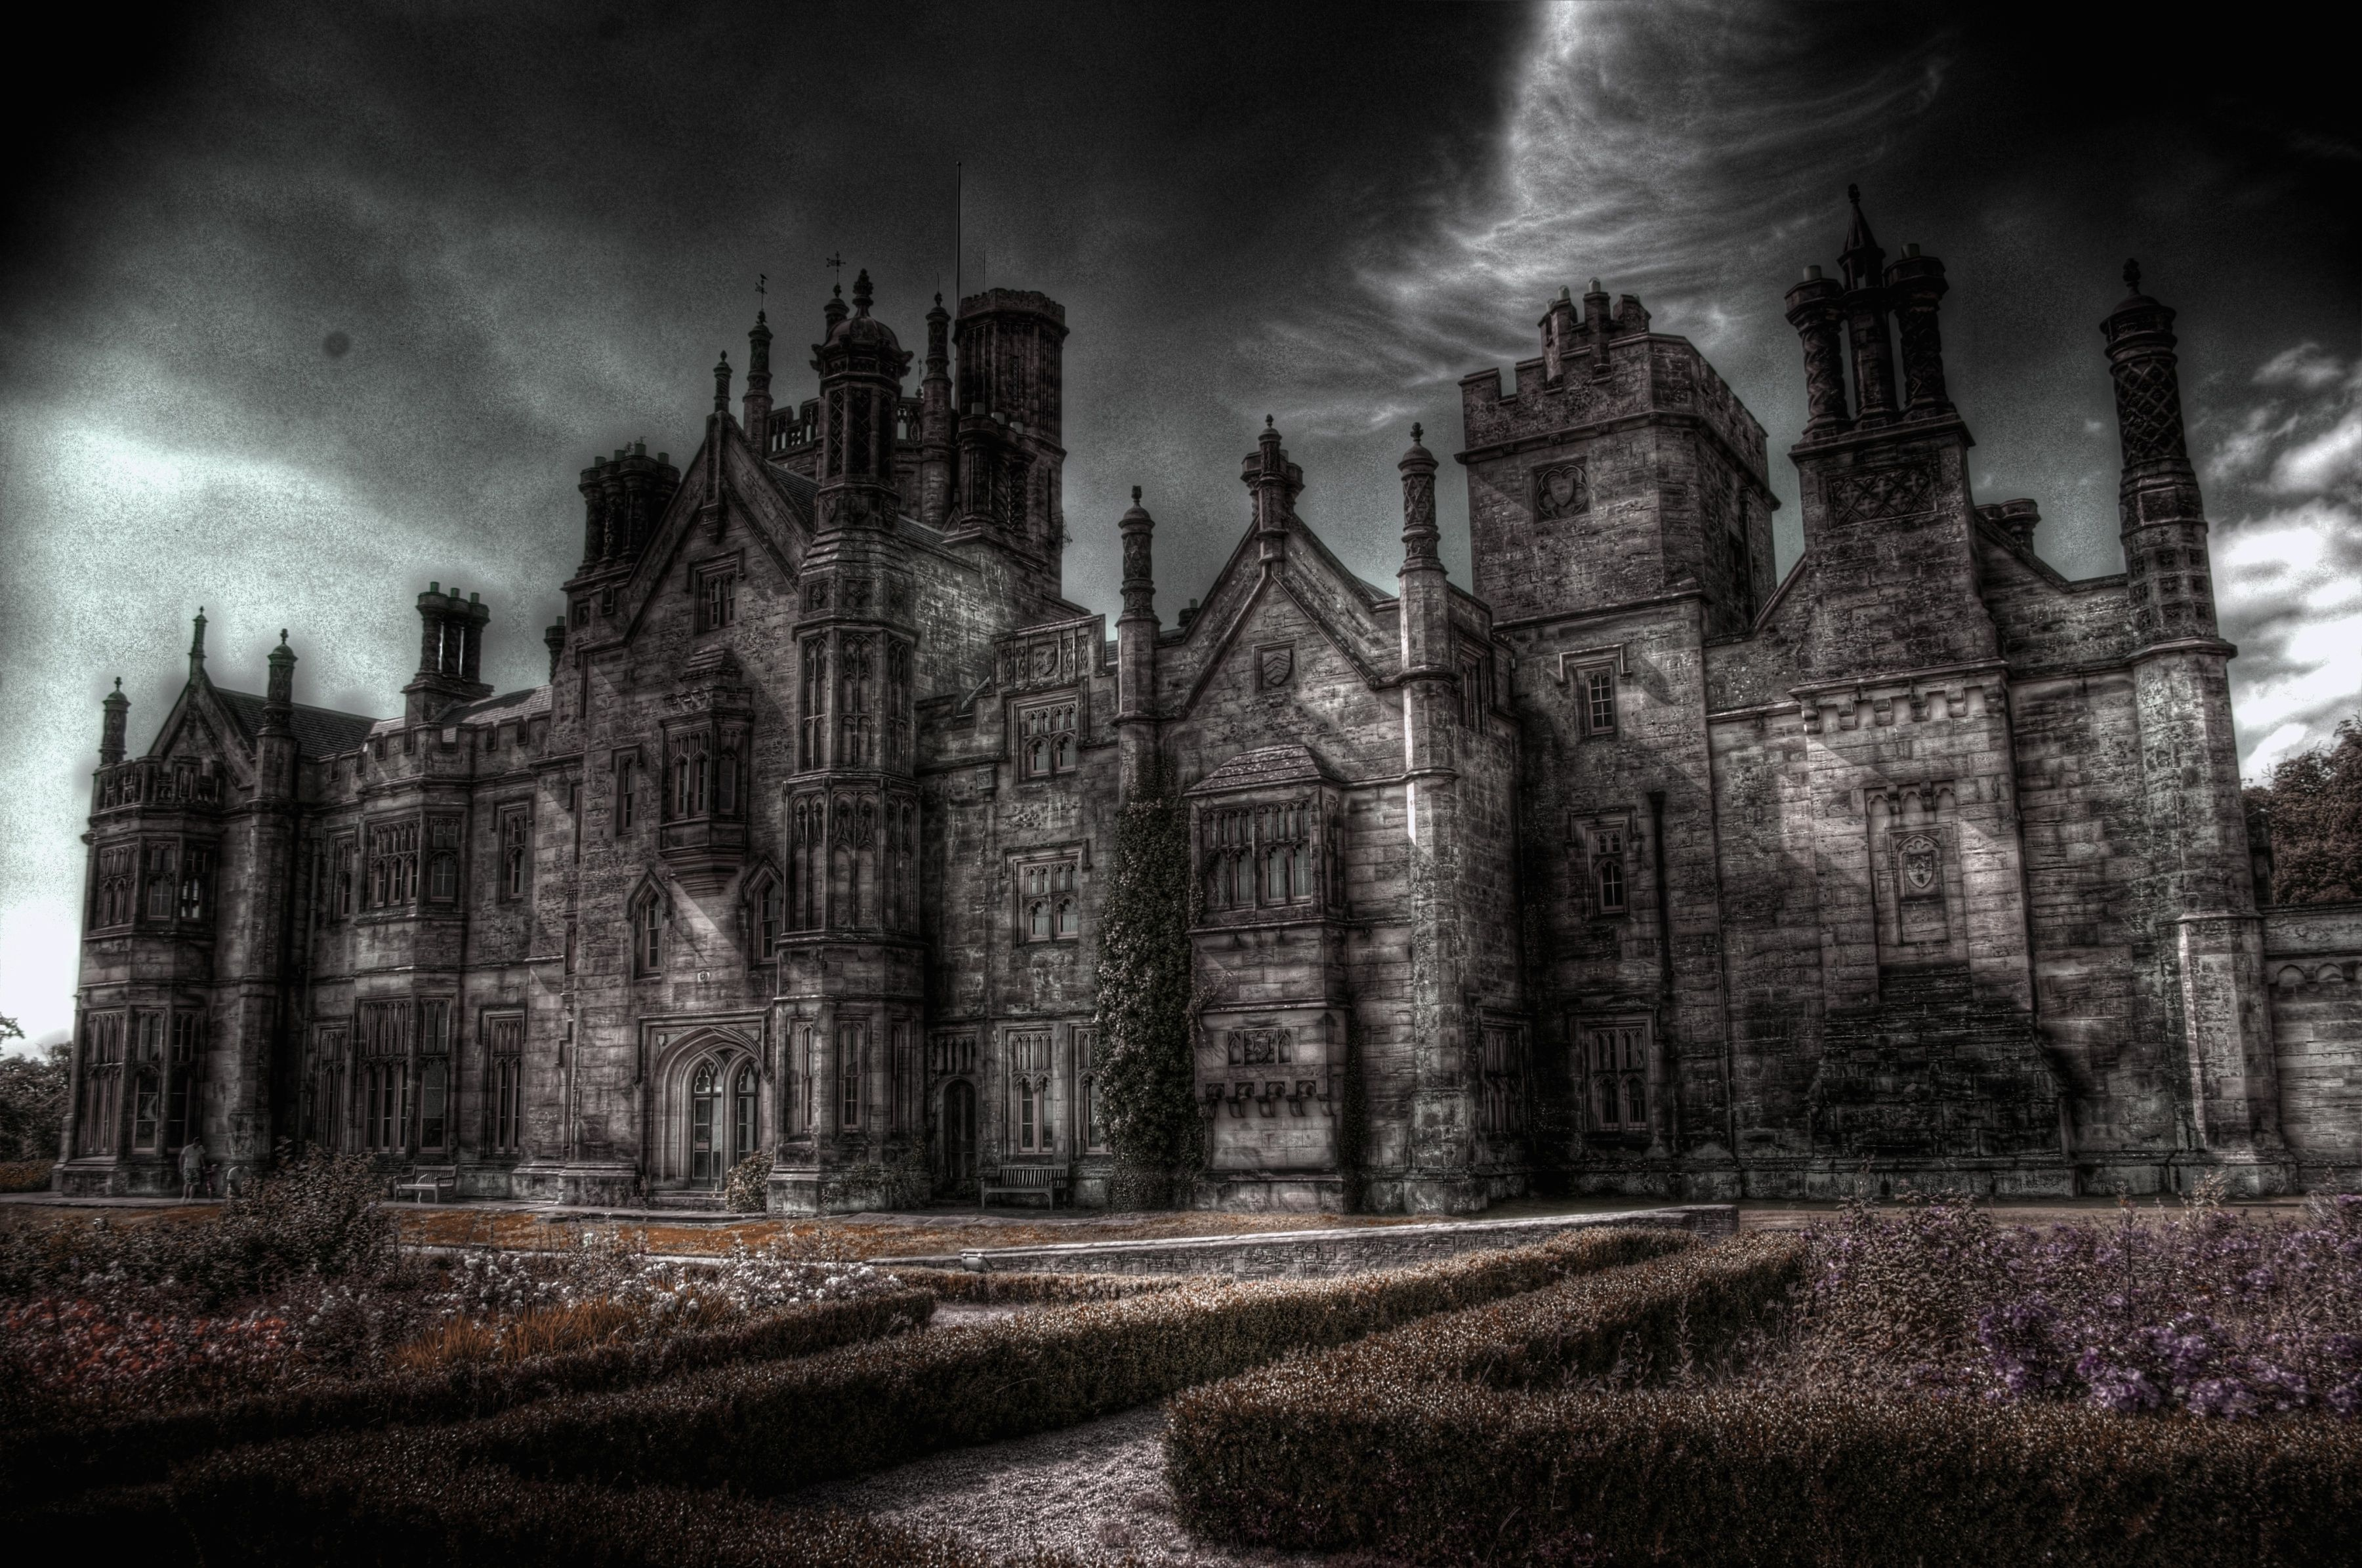 Gothic Architecture Building Wallpaper From Dark Wallpapers